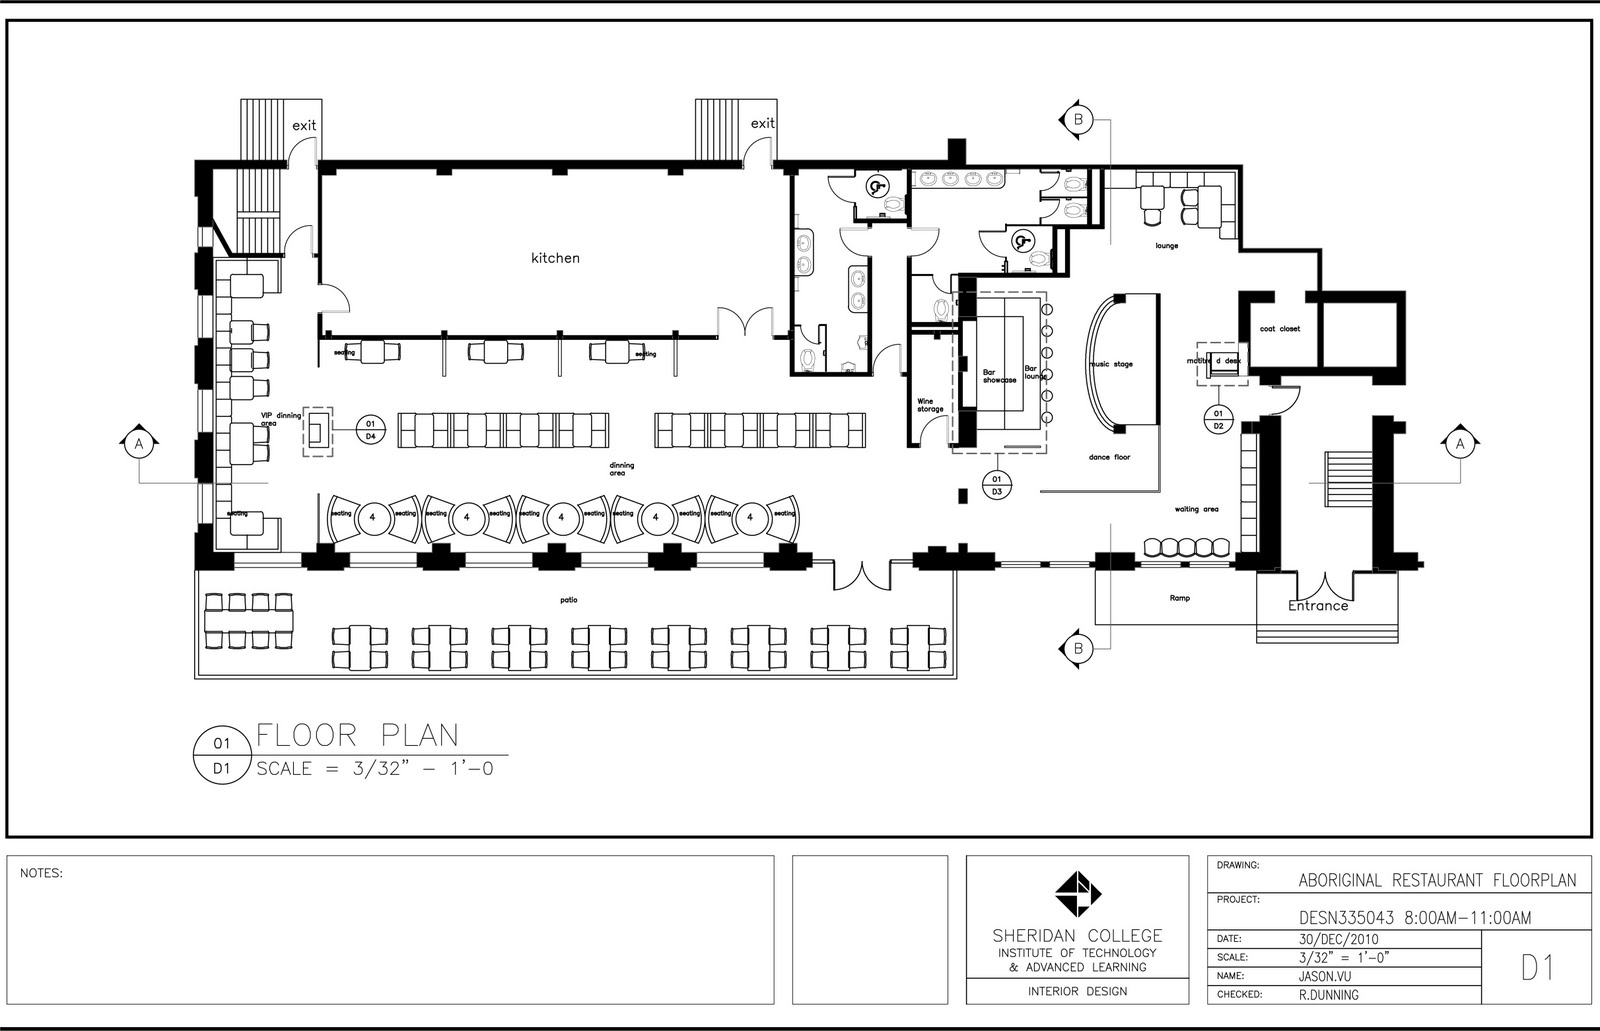 Restaurant floor plans home design and decor reviews for Customize floor plans